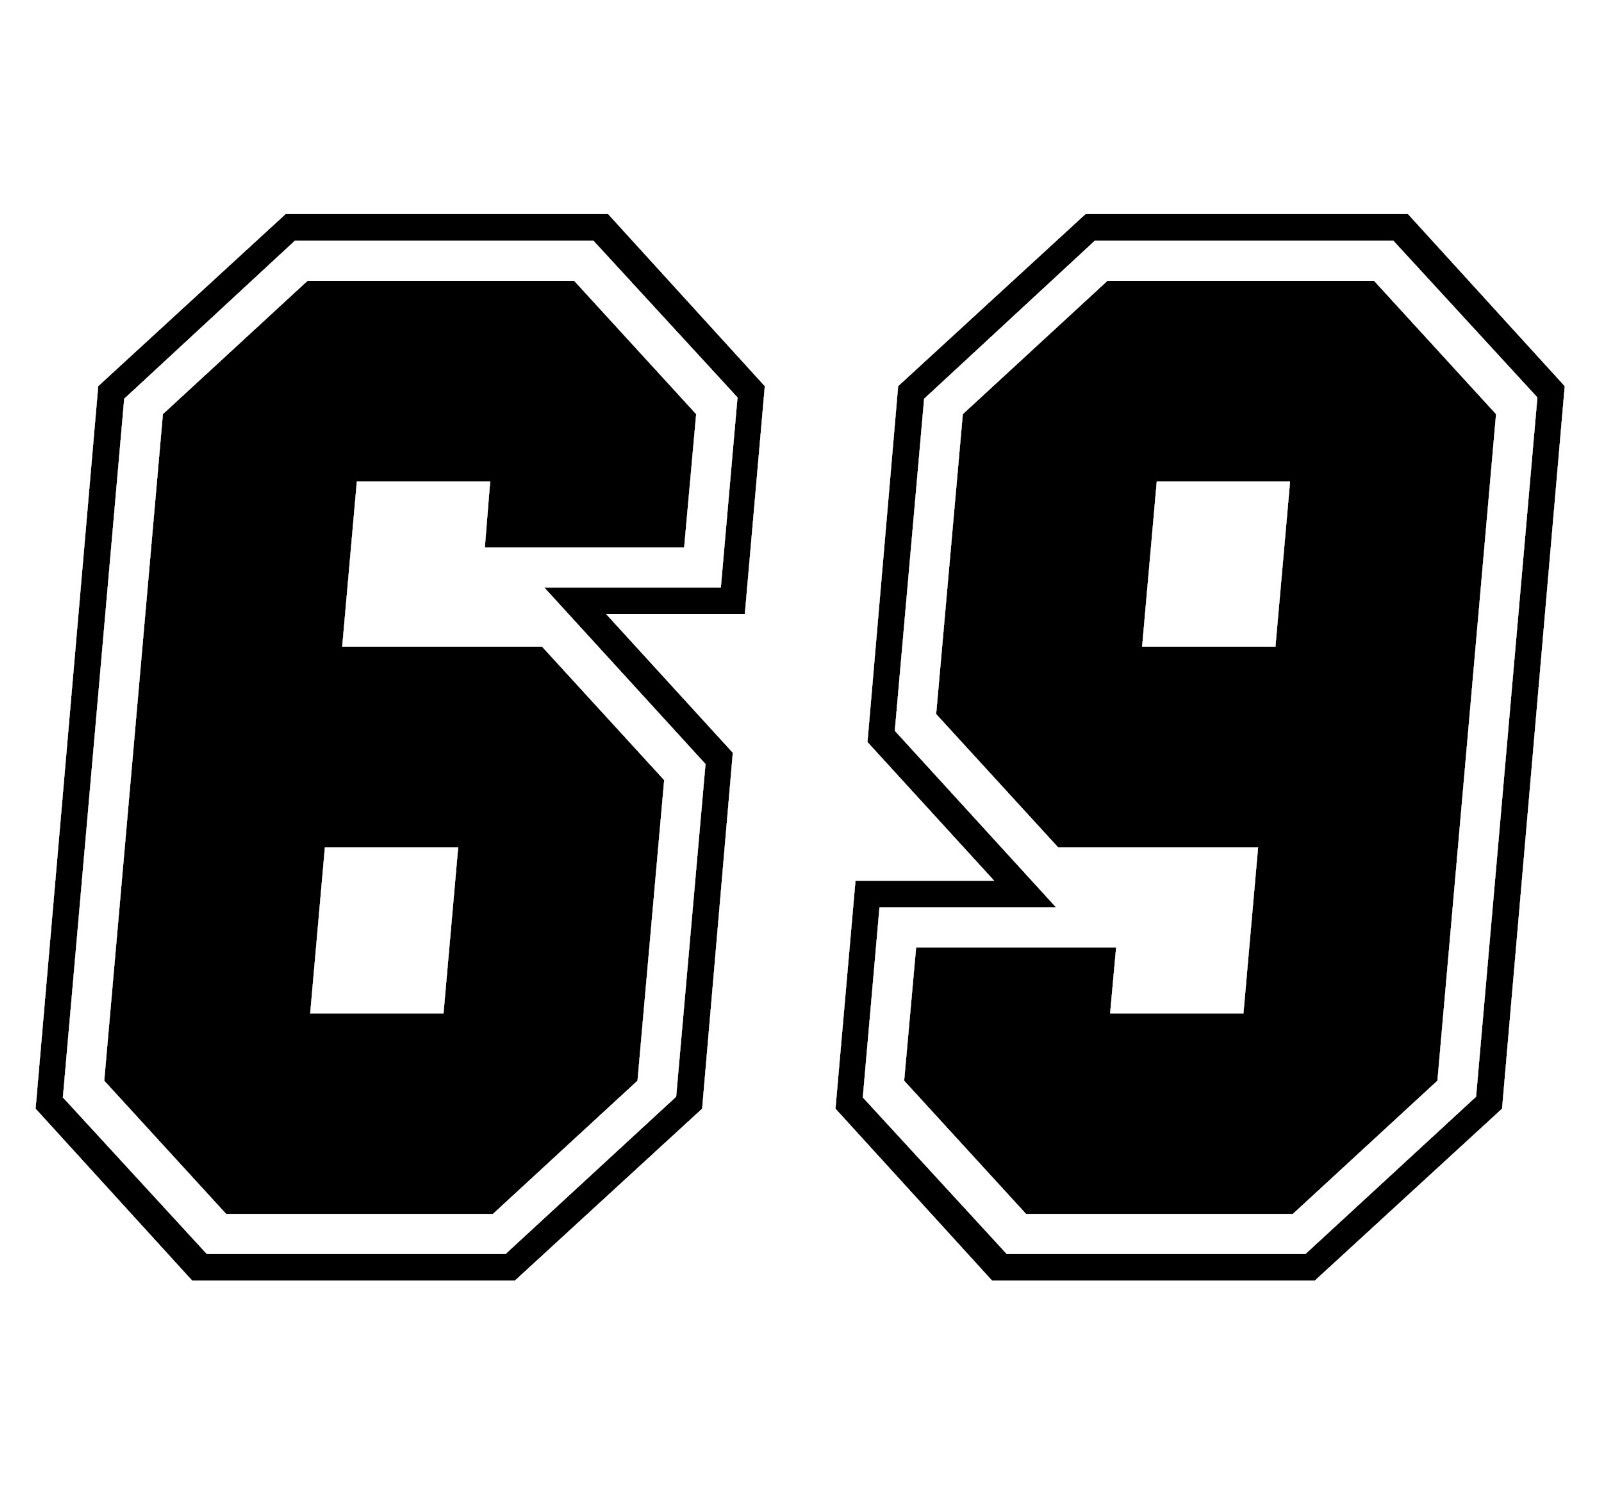 Race numbers car van window decal sticker for Window number